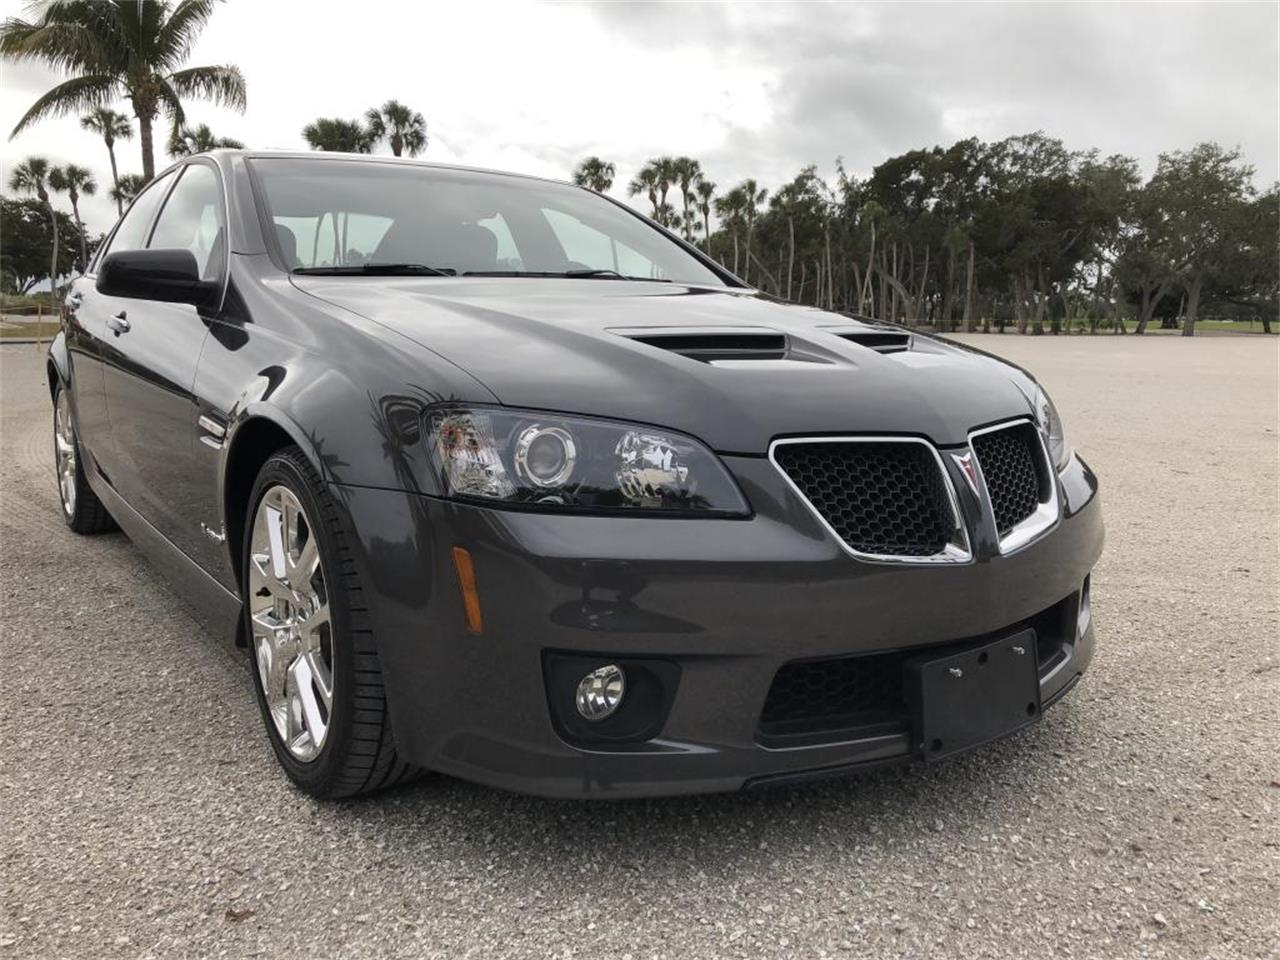 2009 Pontiac G8 for sale in Milford City, CT – photo 6